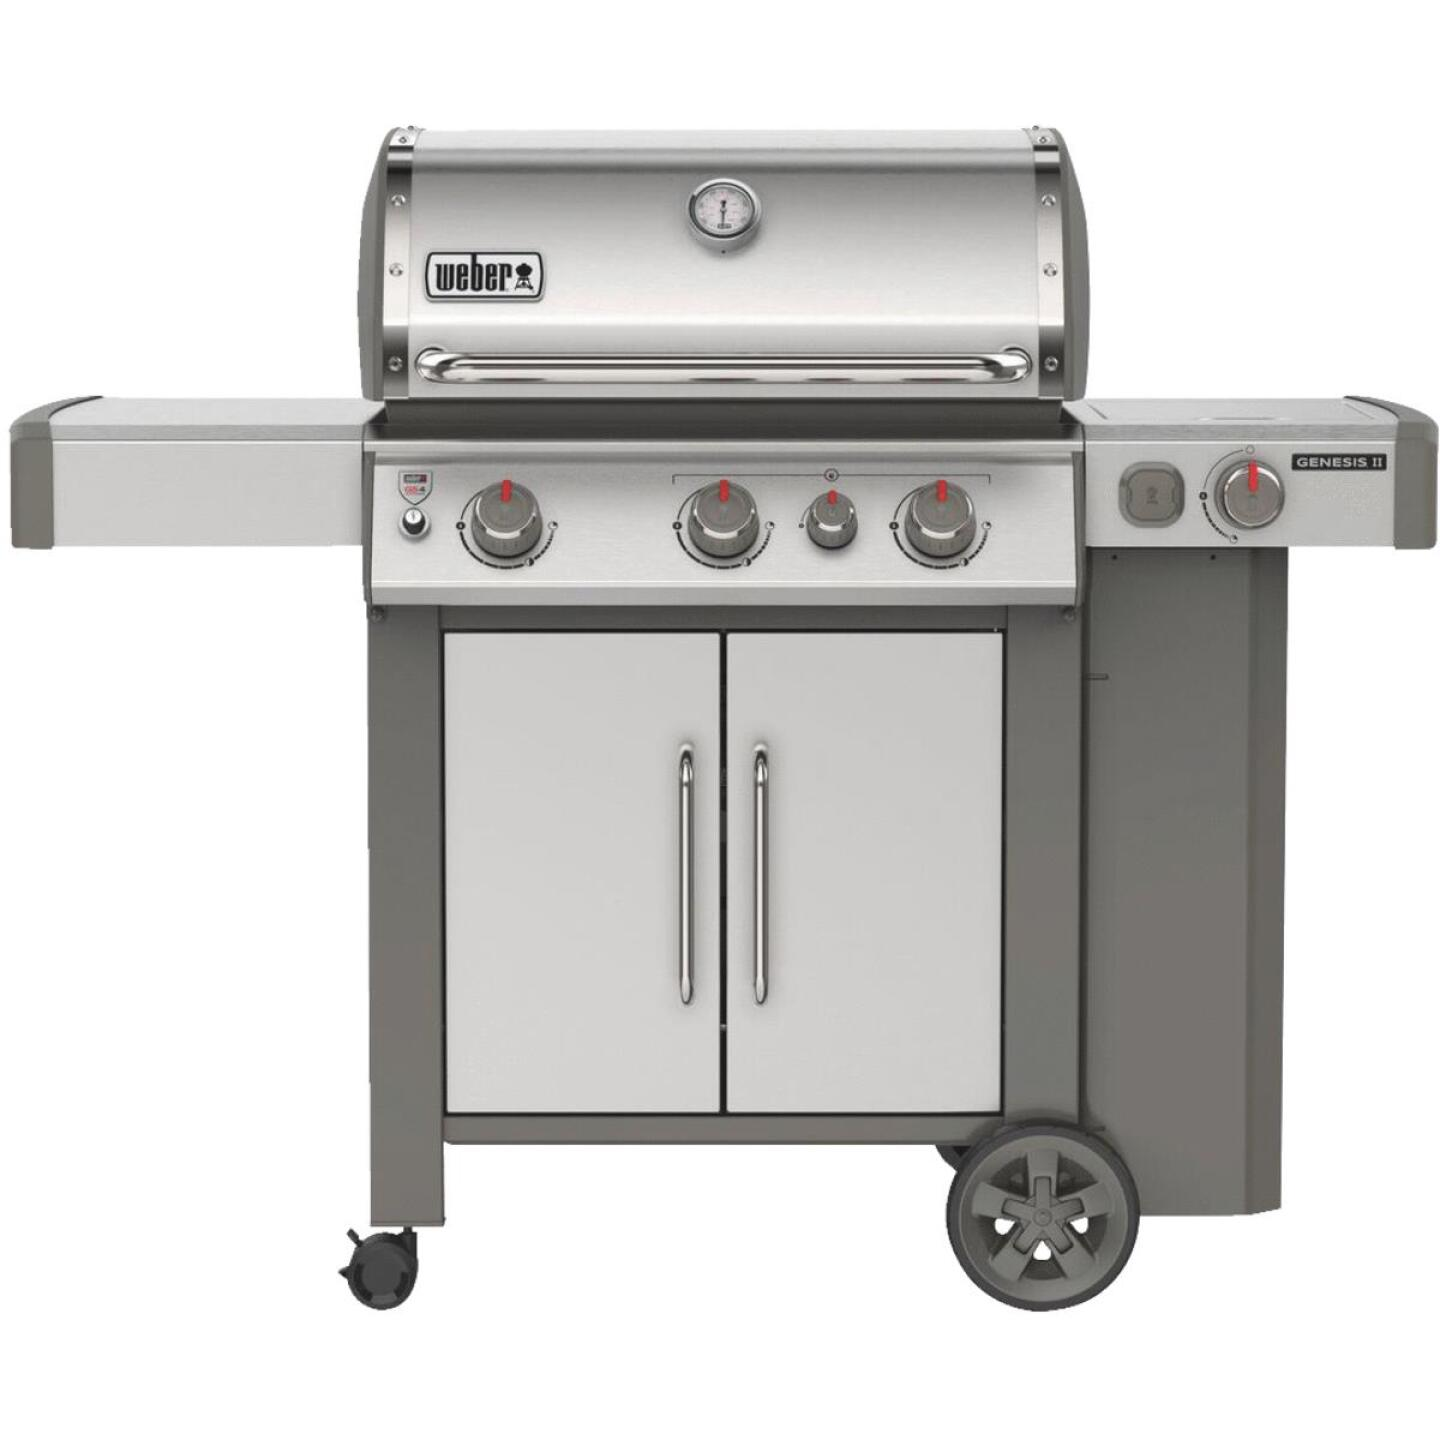 Weber Genesis II S-335 3-Burner Stainless Steel 39,000 BTU LP Gas Grill with 12,000 BTU Side Burner Image 1